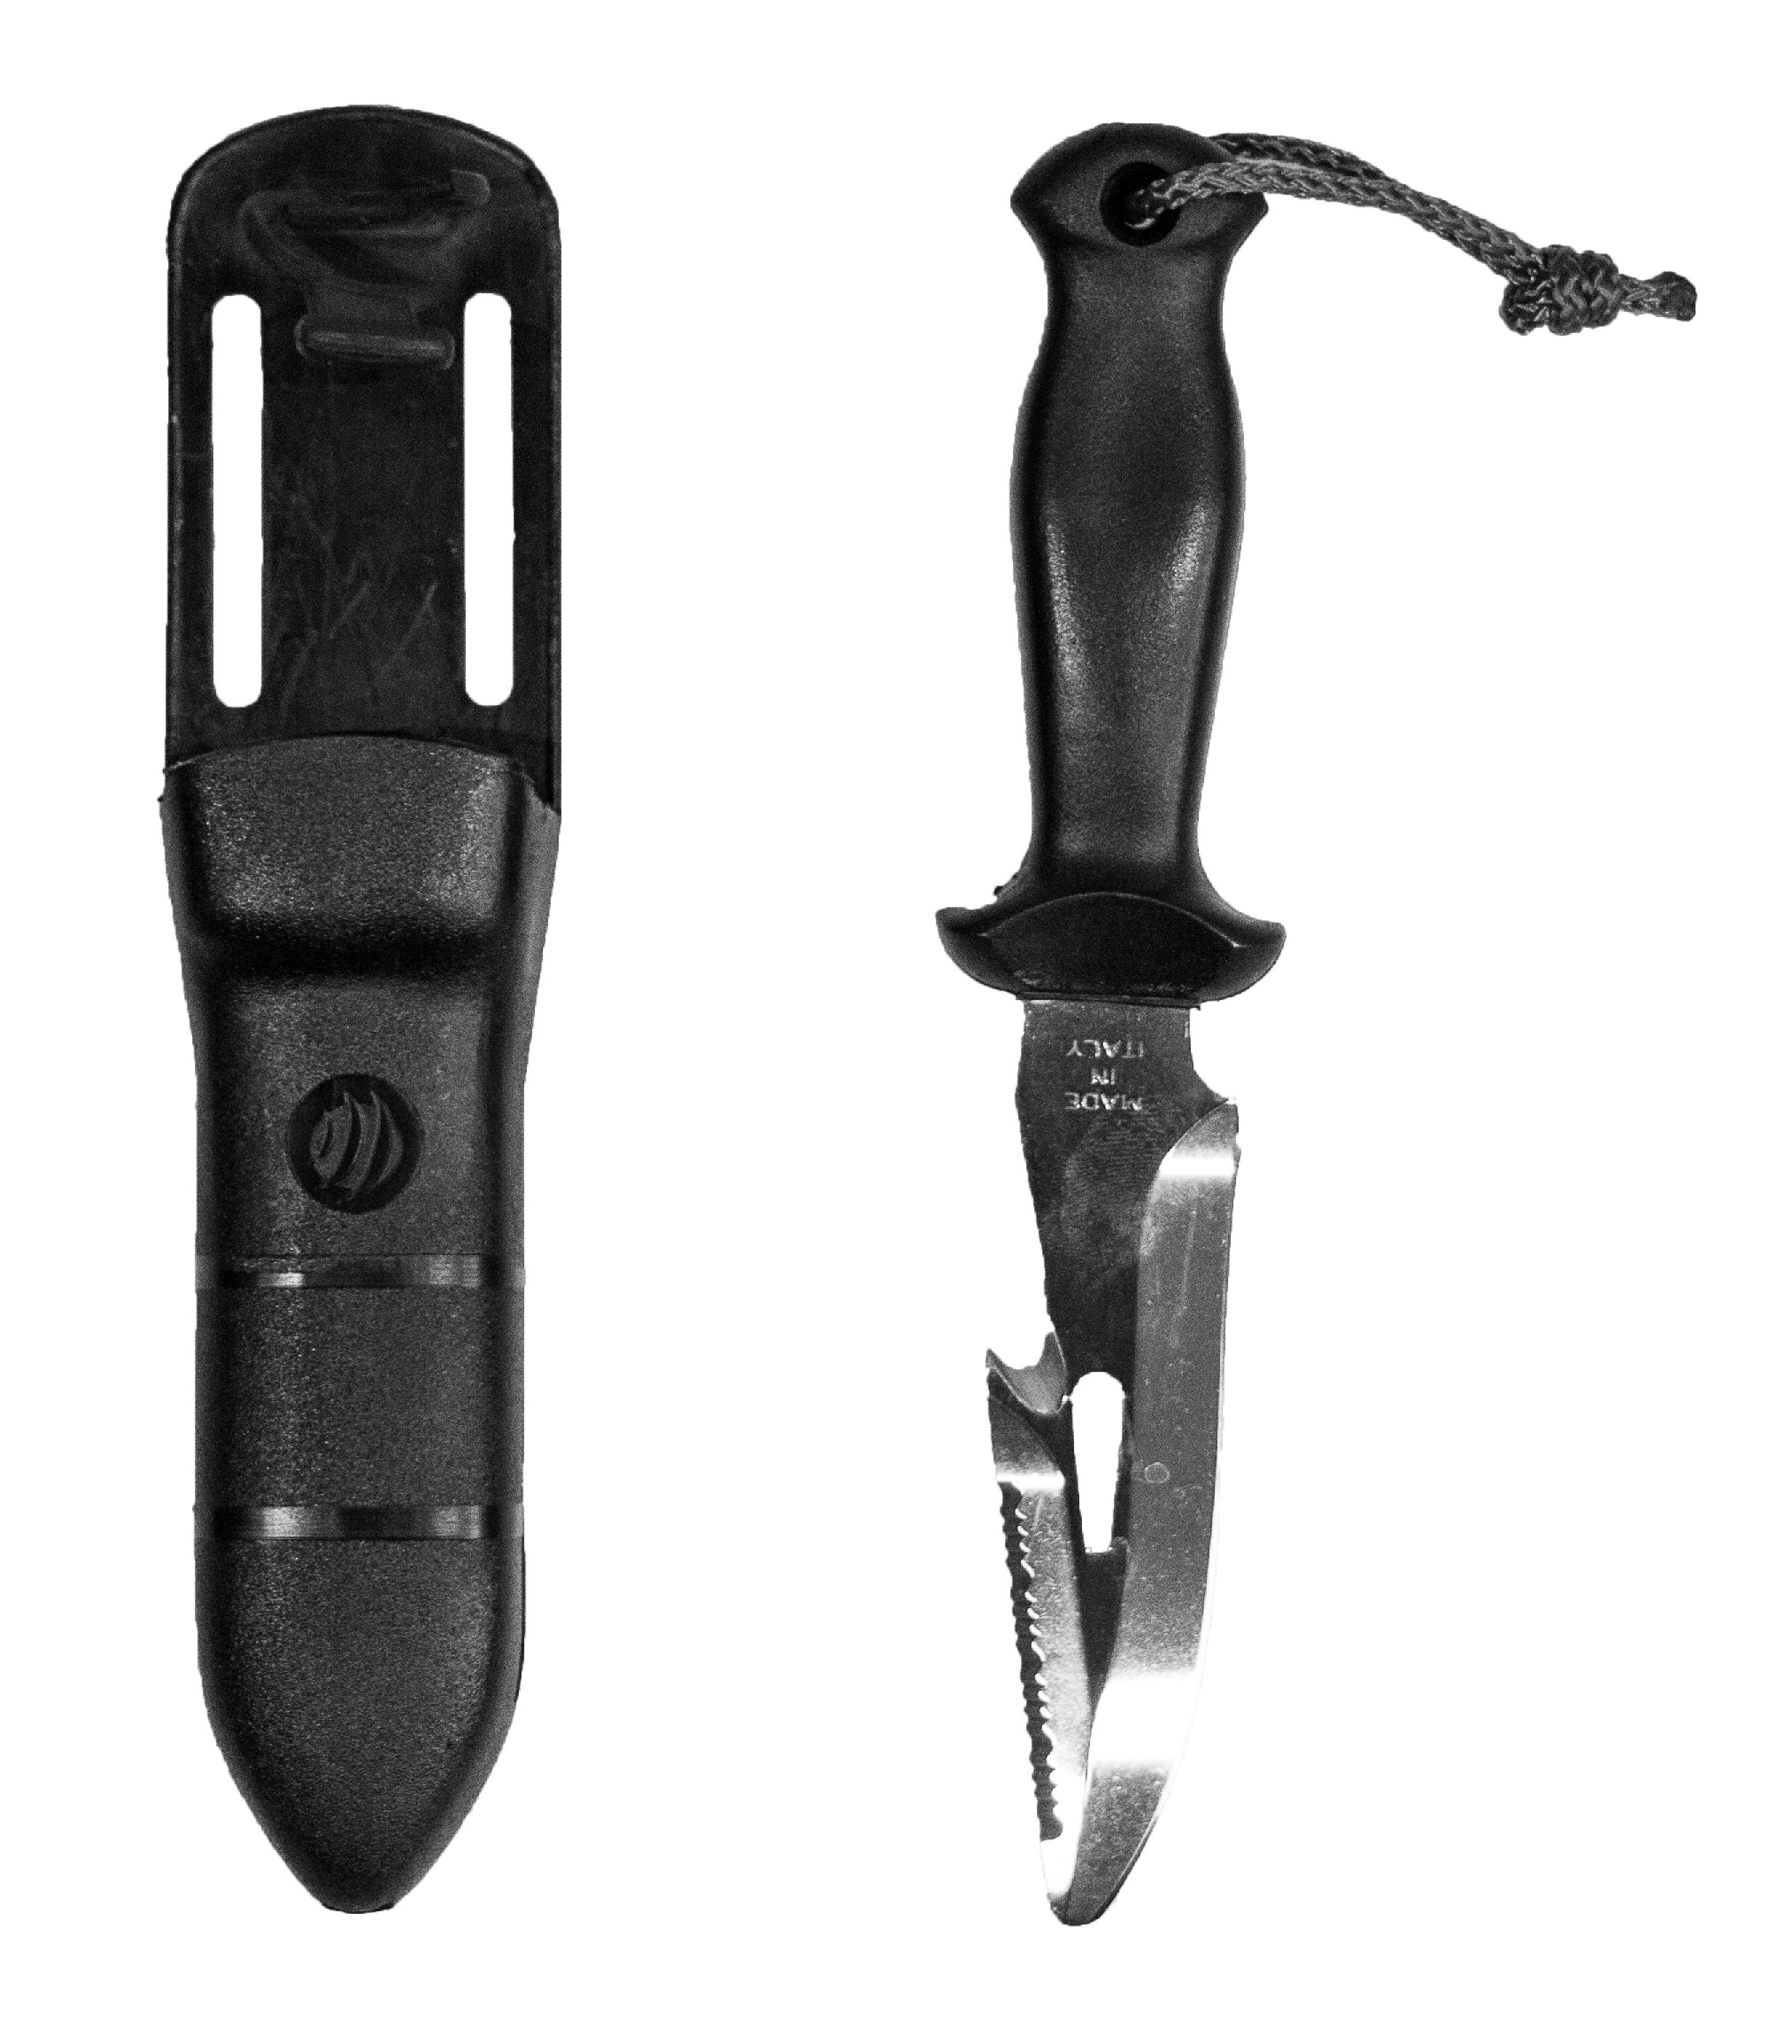 Nůž velký - Safety stainless knife  for Impact Vest 50N